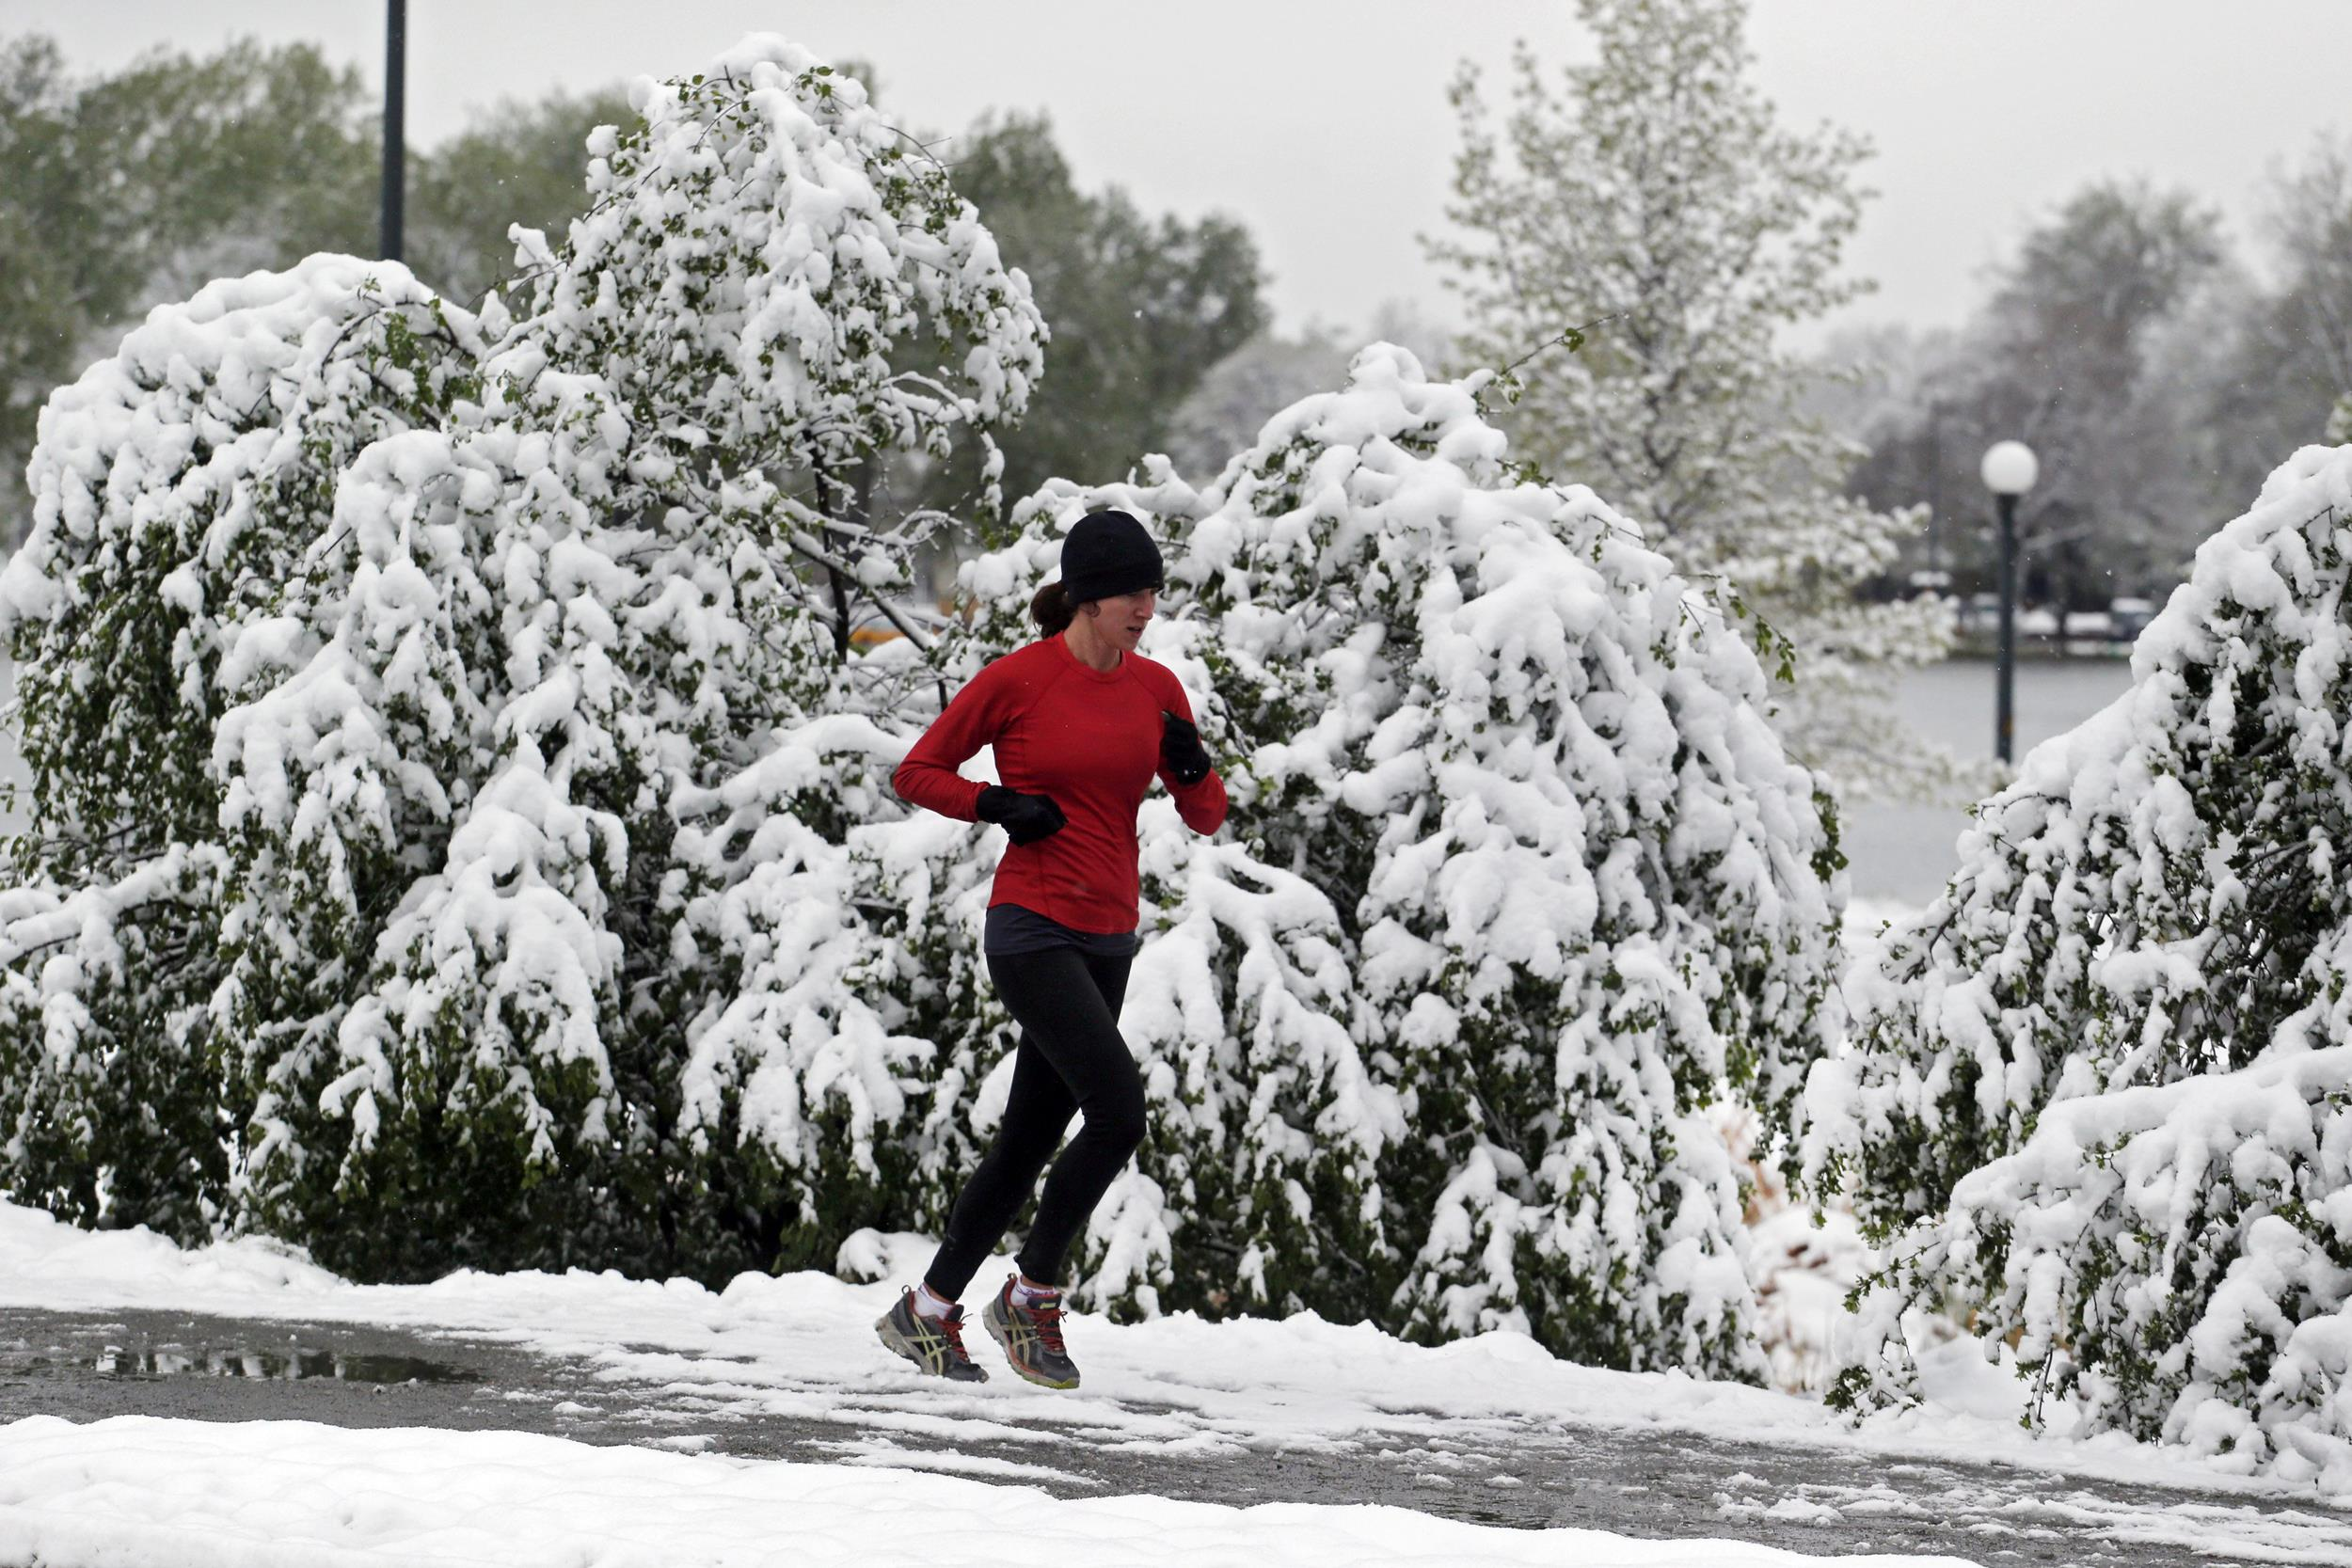 Image:Heavy snow weighs down trees and bushes as a woman runs in Washington Park in Denver